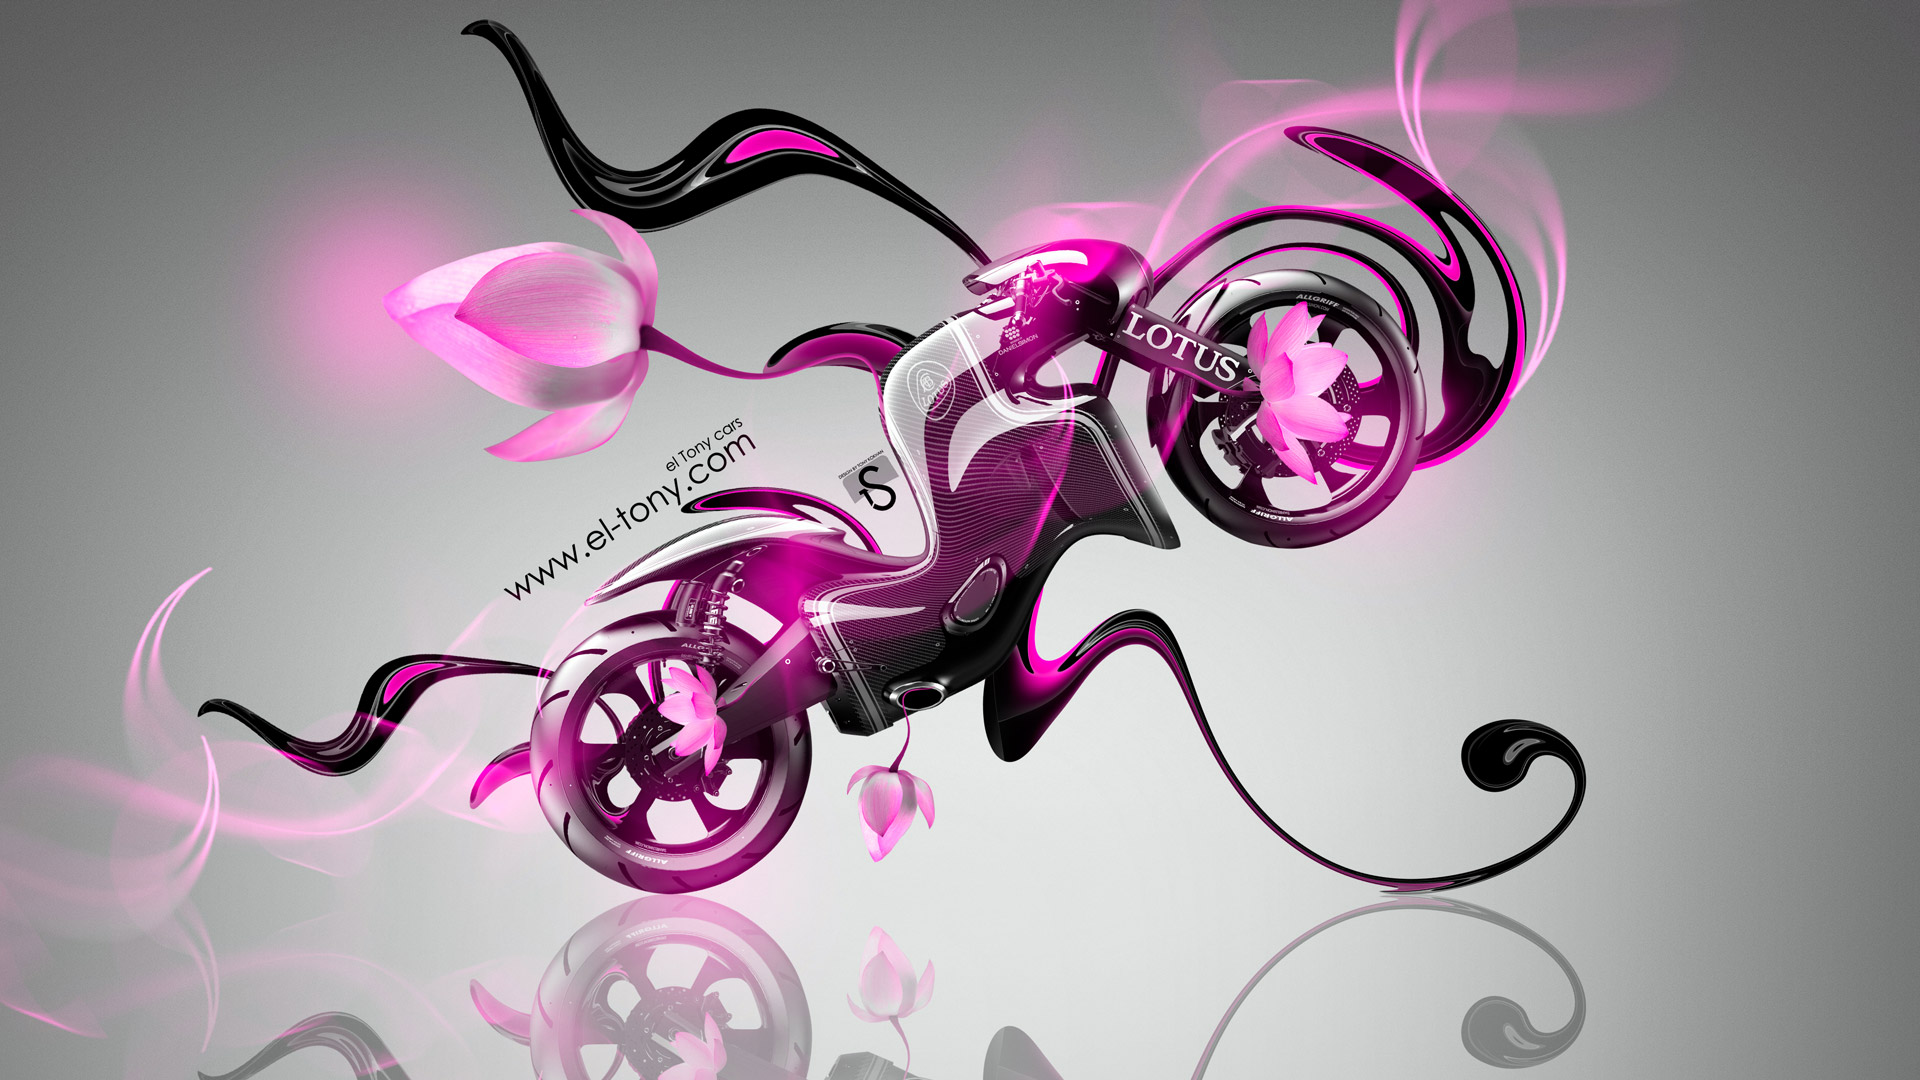 Beautiful Lotus C 01 Fantasy Flowers Moto Bike 2014